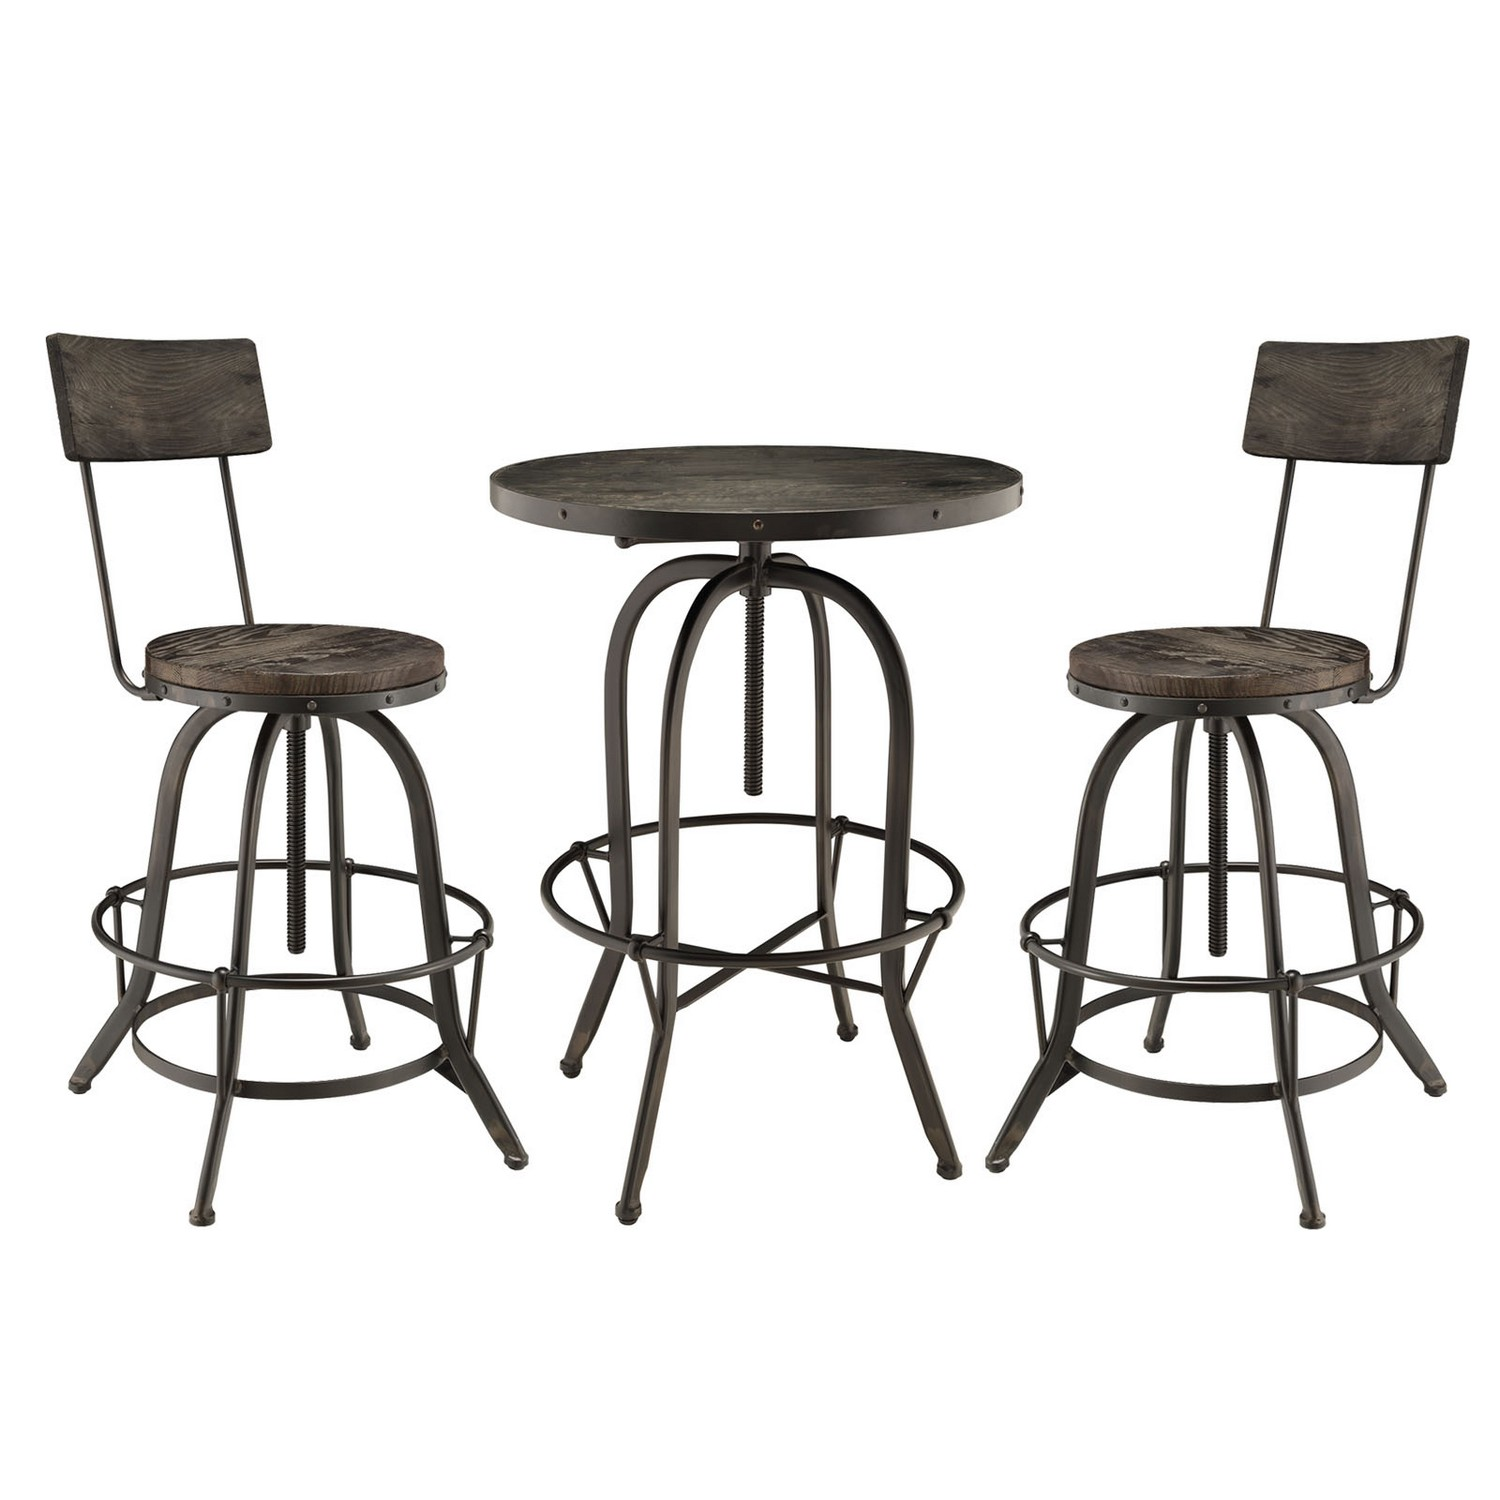 Modway Gather 3 Piece Dining Set - Black